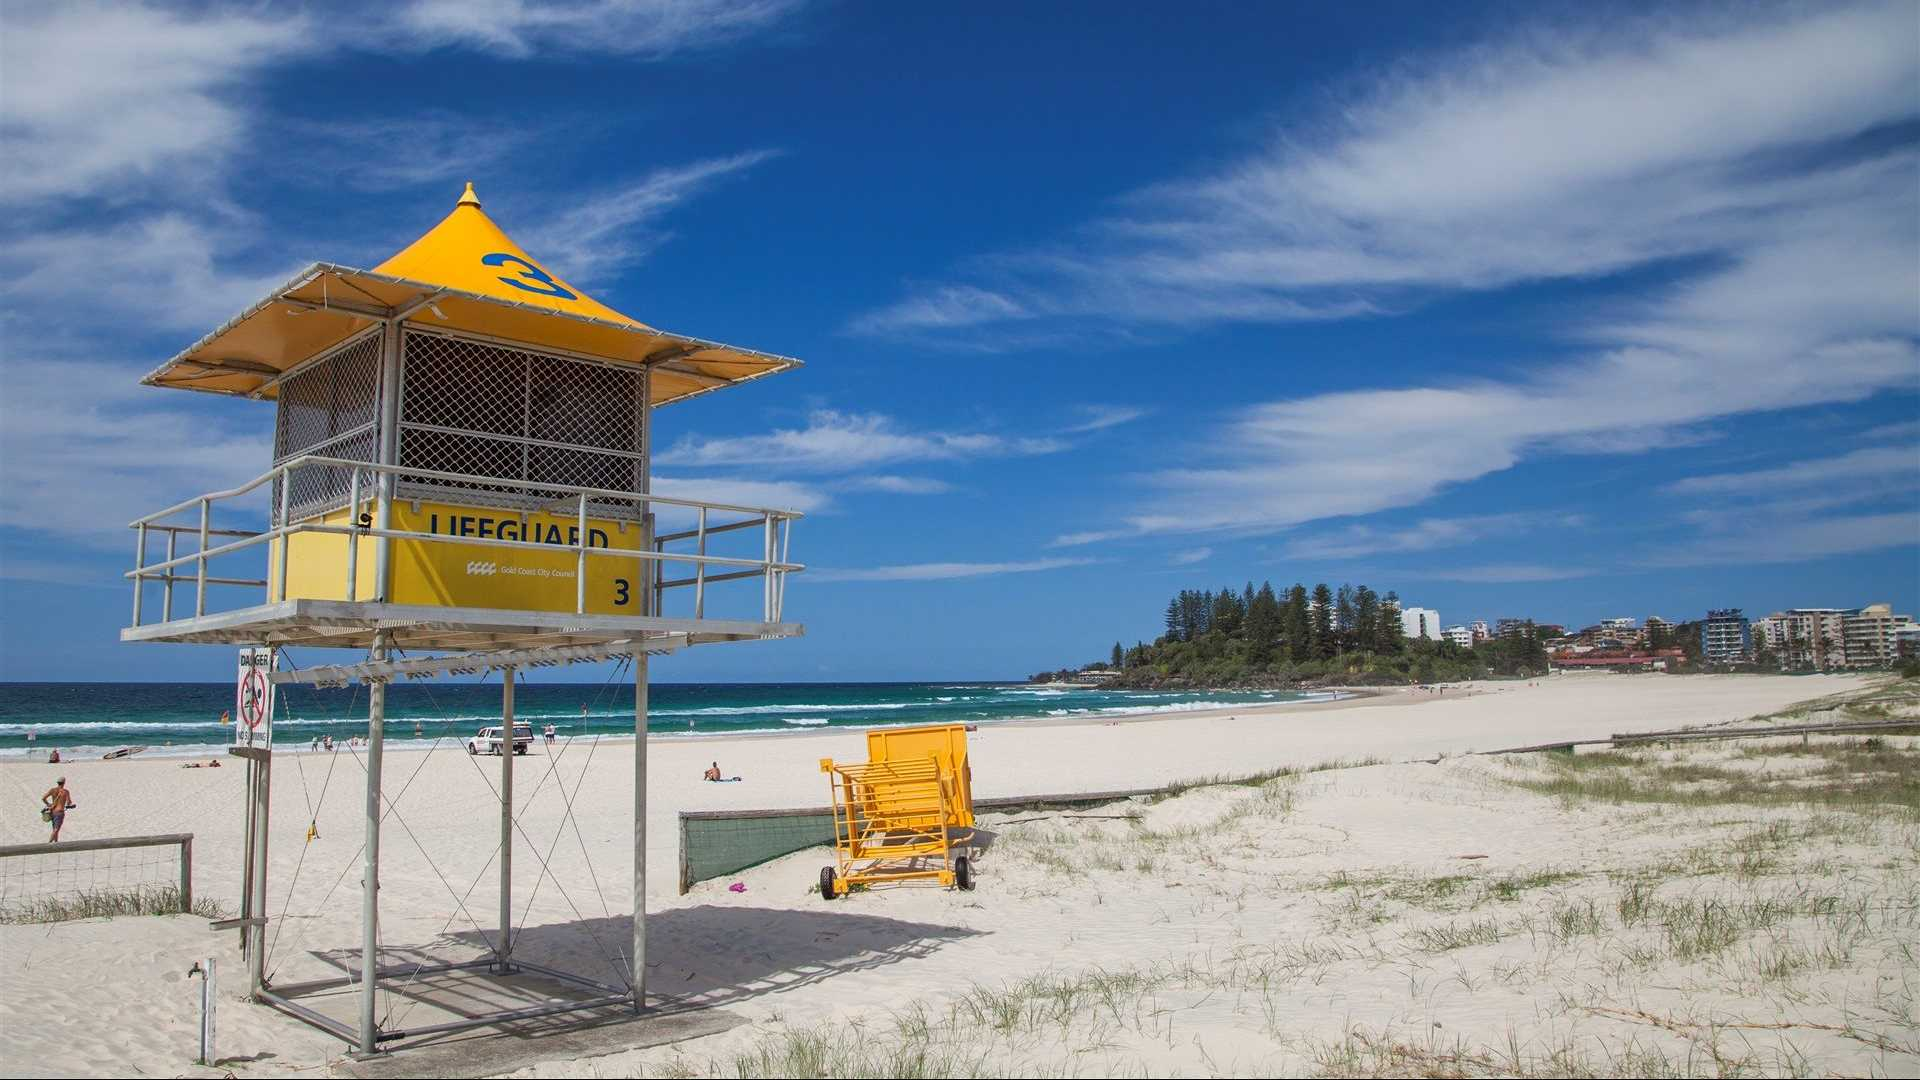 View of a lifeguard watch tower on the beach